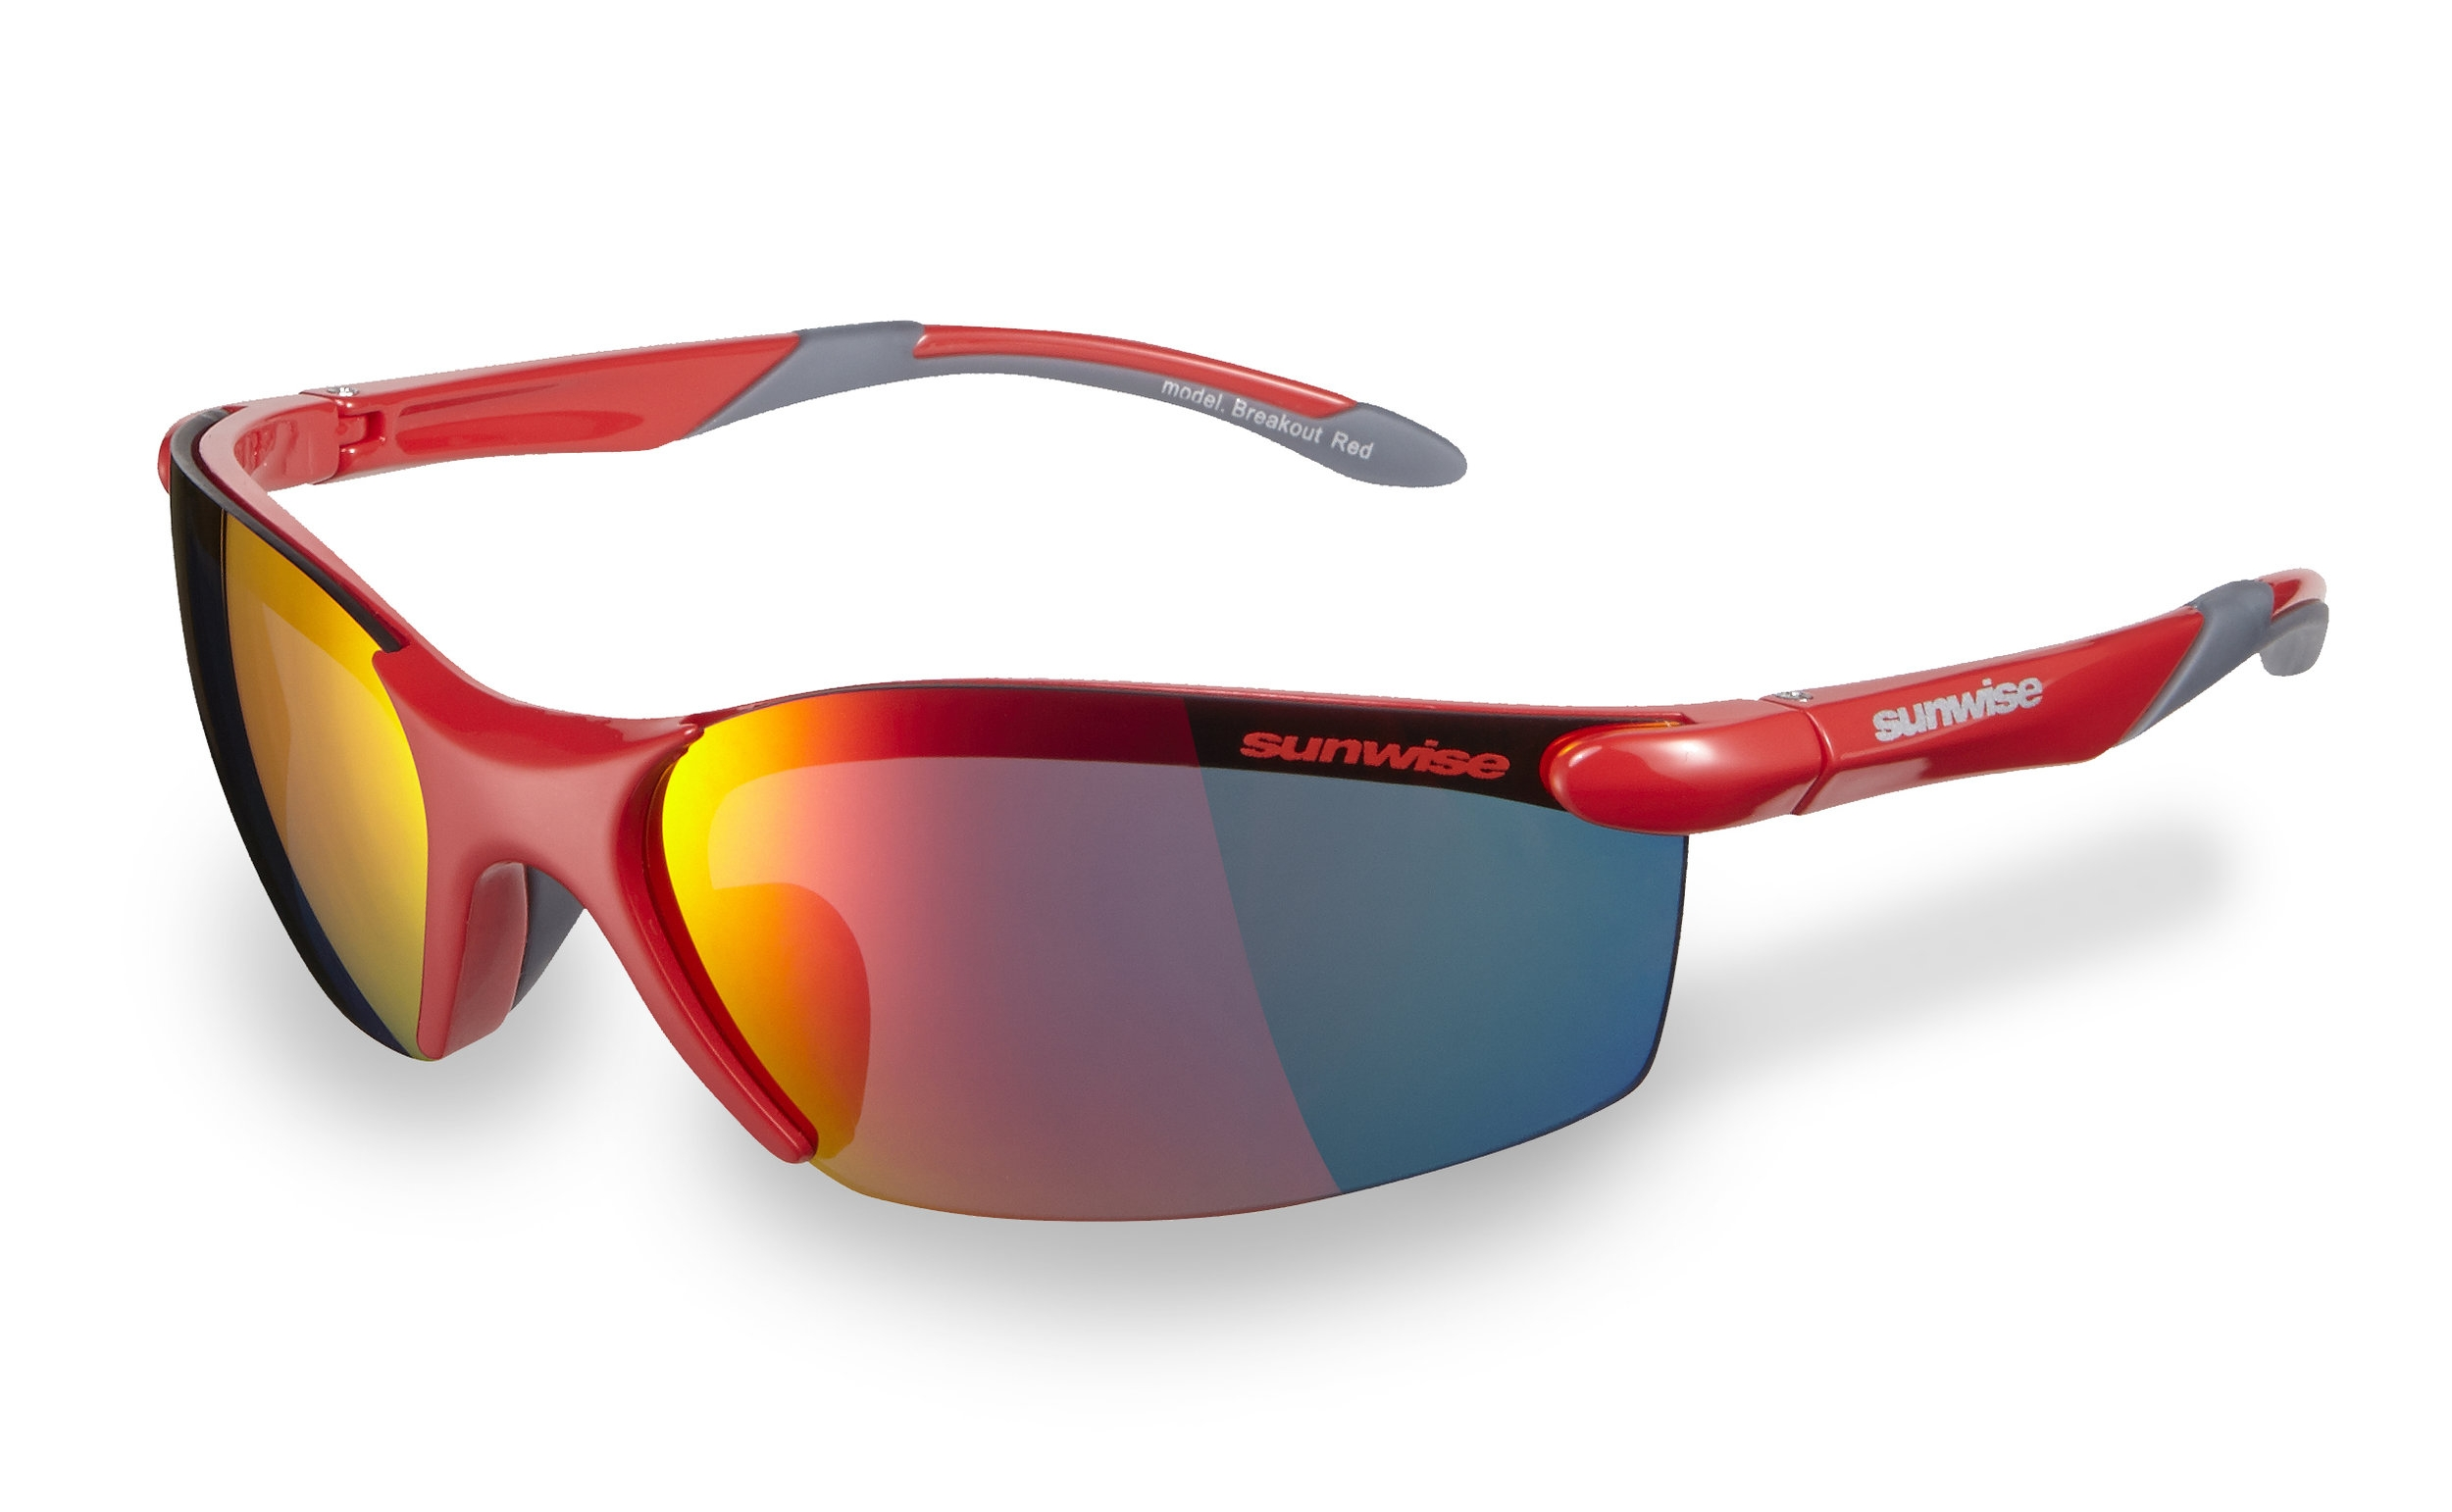 Sunwise Breakout Cycling Sunglasses